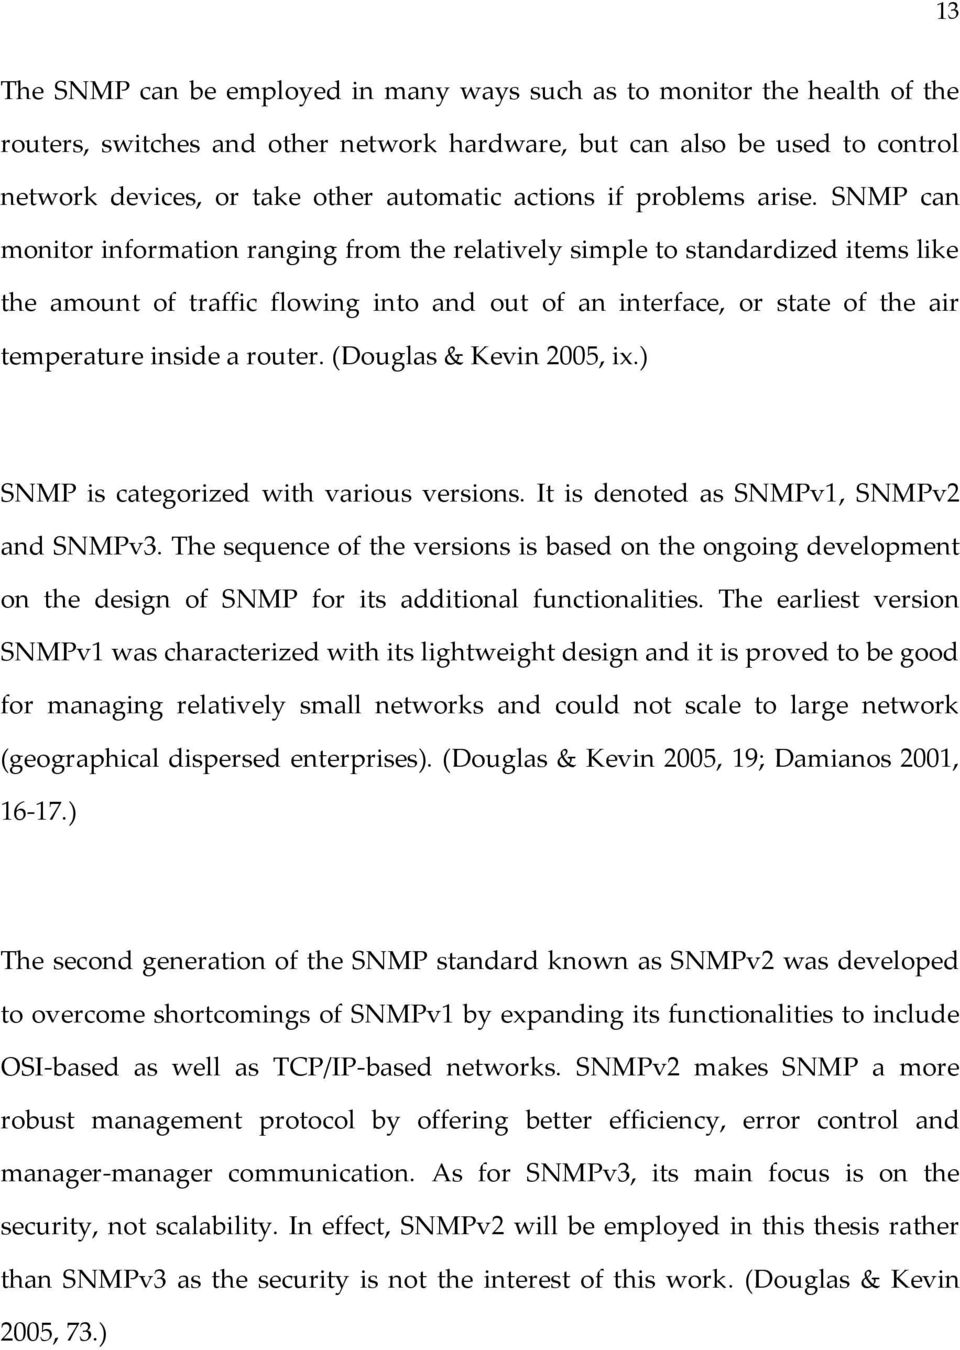 SNMP can monitor information ranging from the relatively simple to standardized items like the amount of traffic flowing into and out of an interface, or state of the air temperature inside a router.